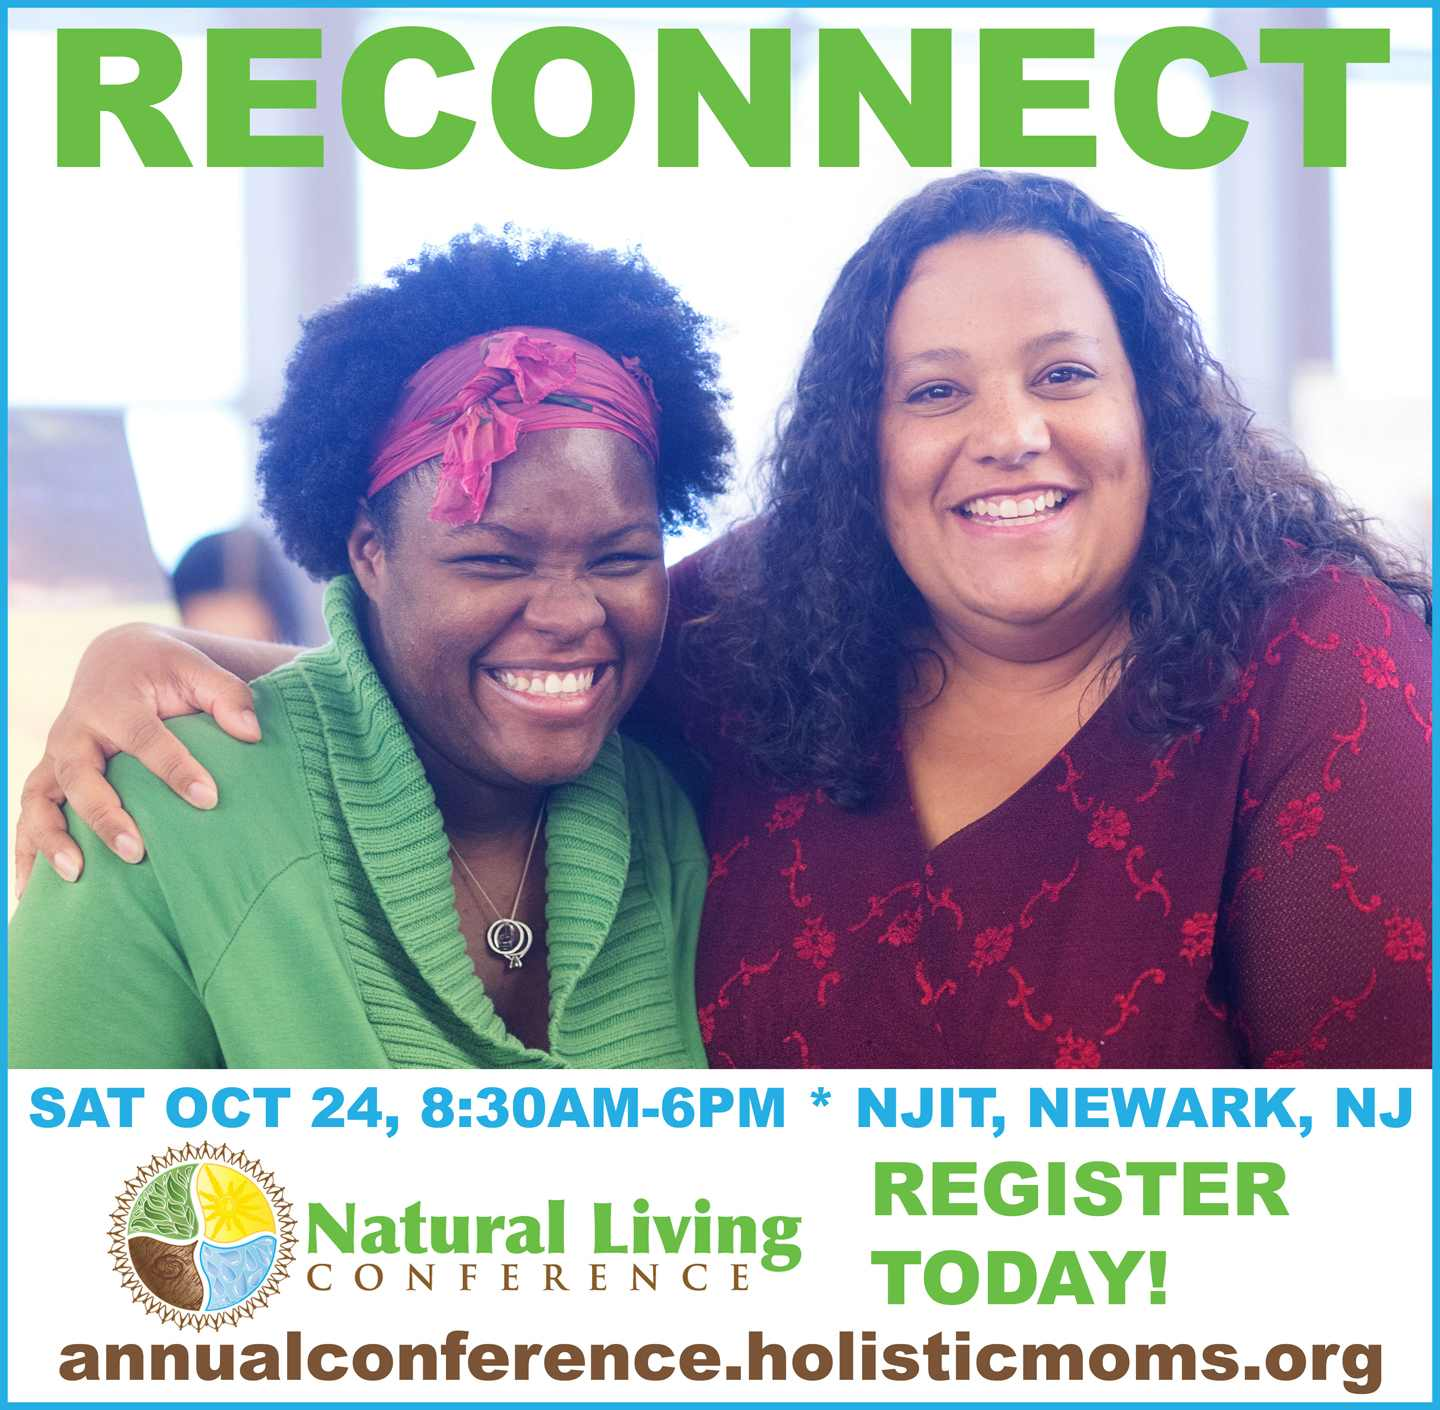 Reconnect - Sat, Oct 24, 8:30 AM - 6 PM - Natural Living Conference